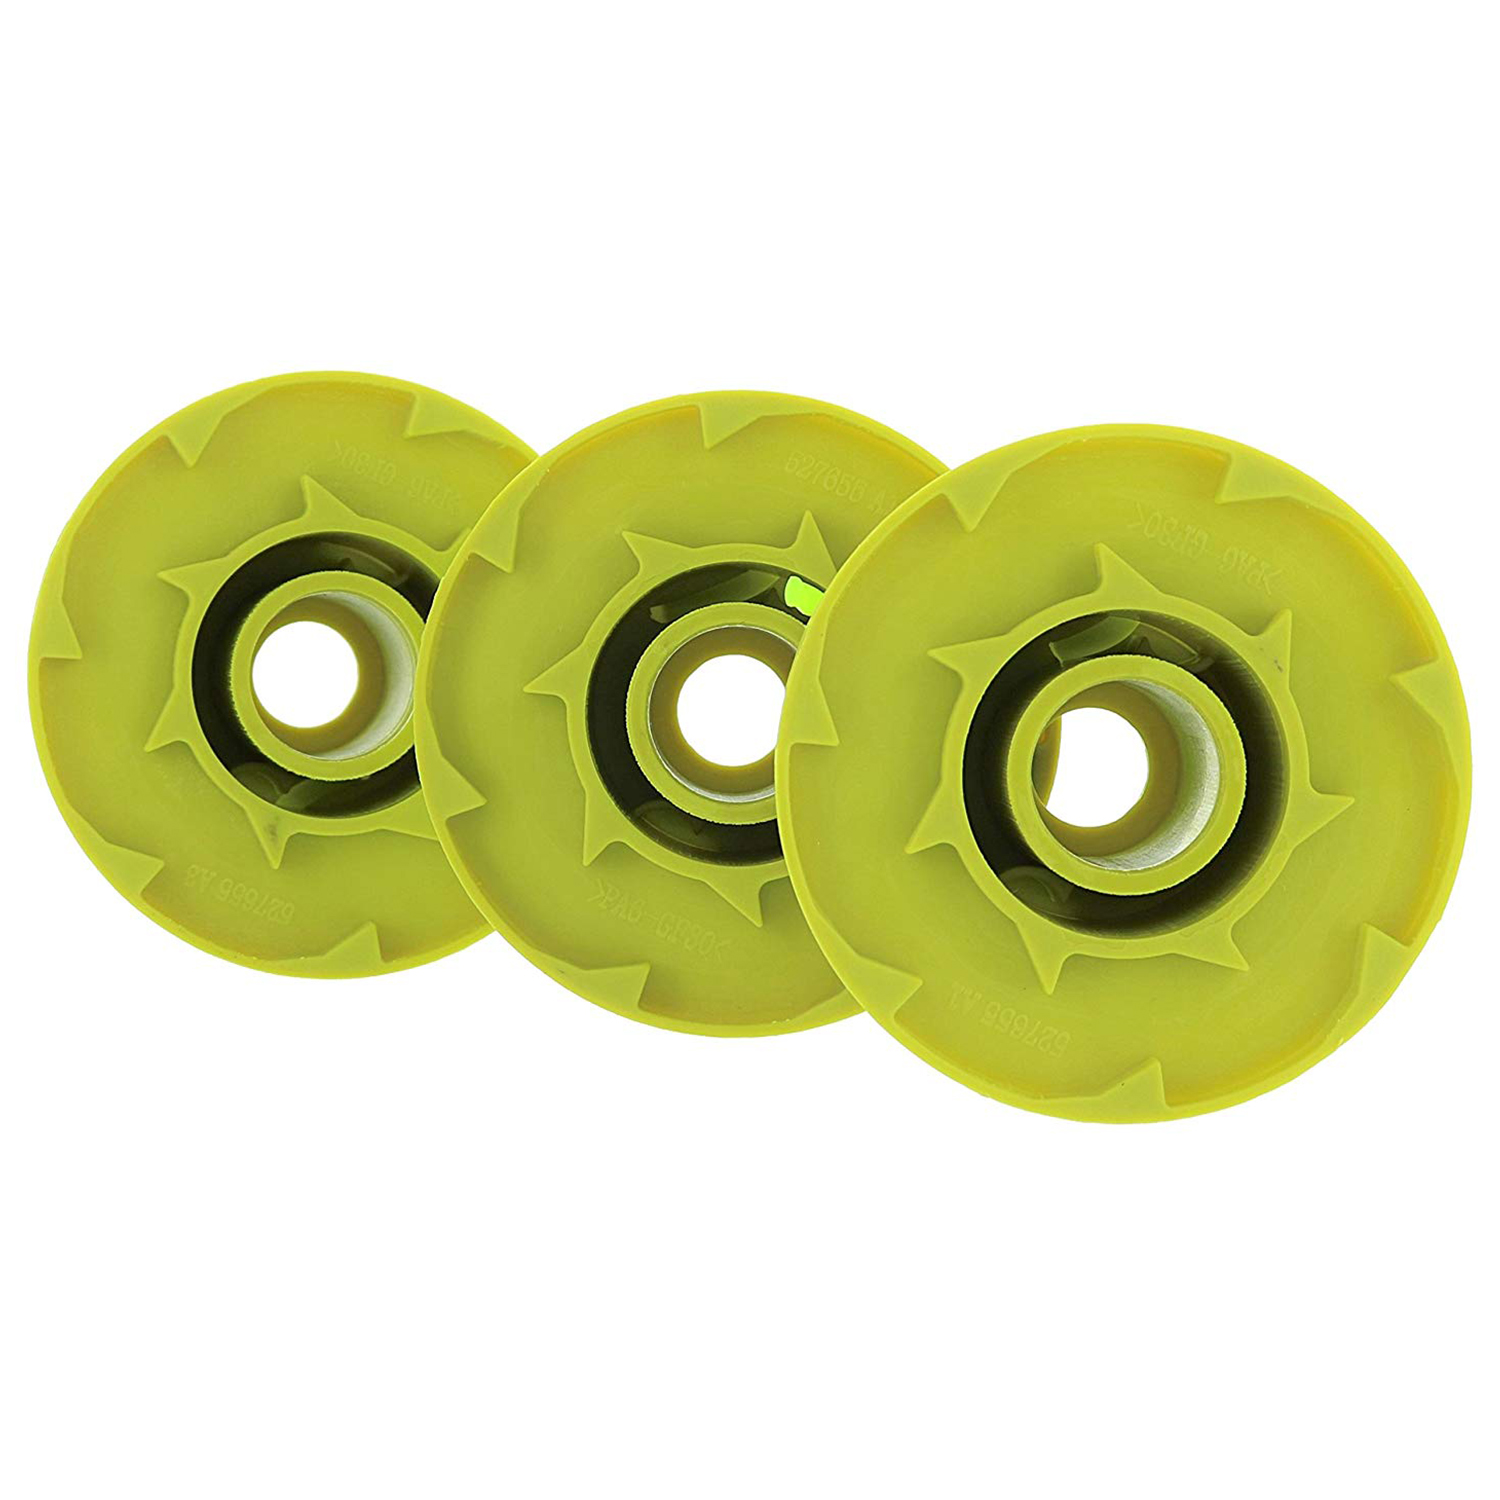 For Ryobi One PLUS AC80RL3 OEM  080 Inch Twisted Line and Spool Replacement  for 18v, 24v, and 40v Cordless Trimmers (3 Pack)